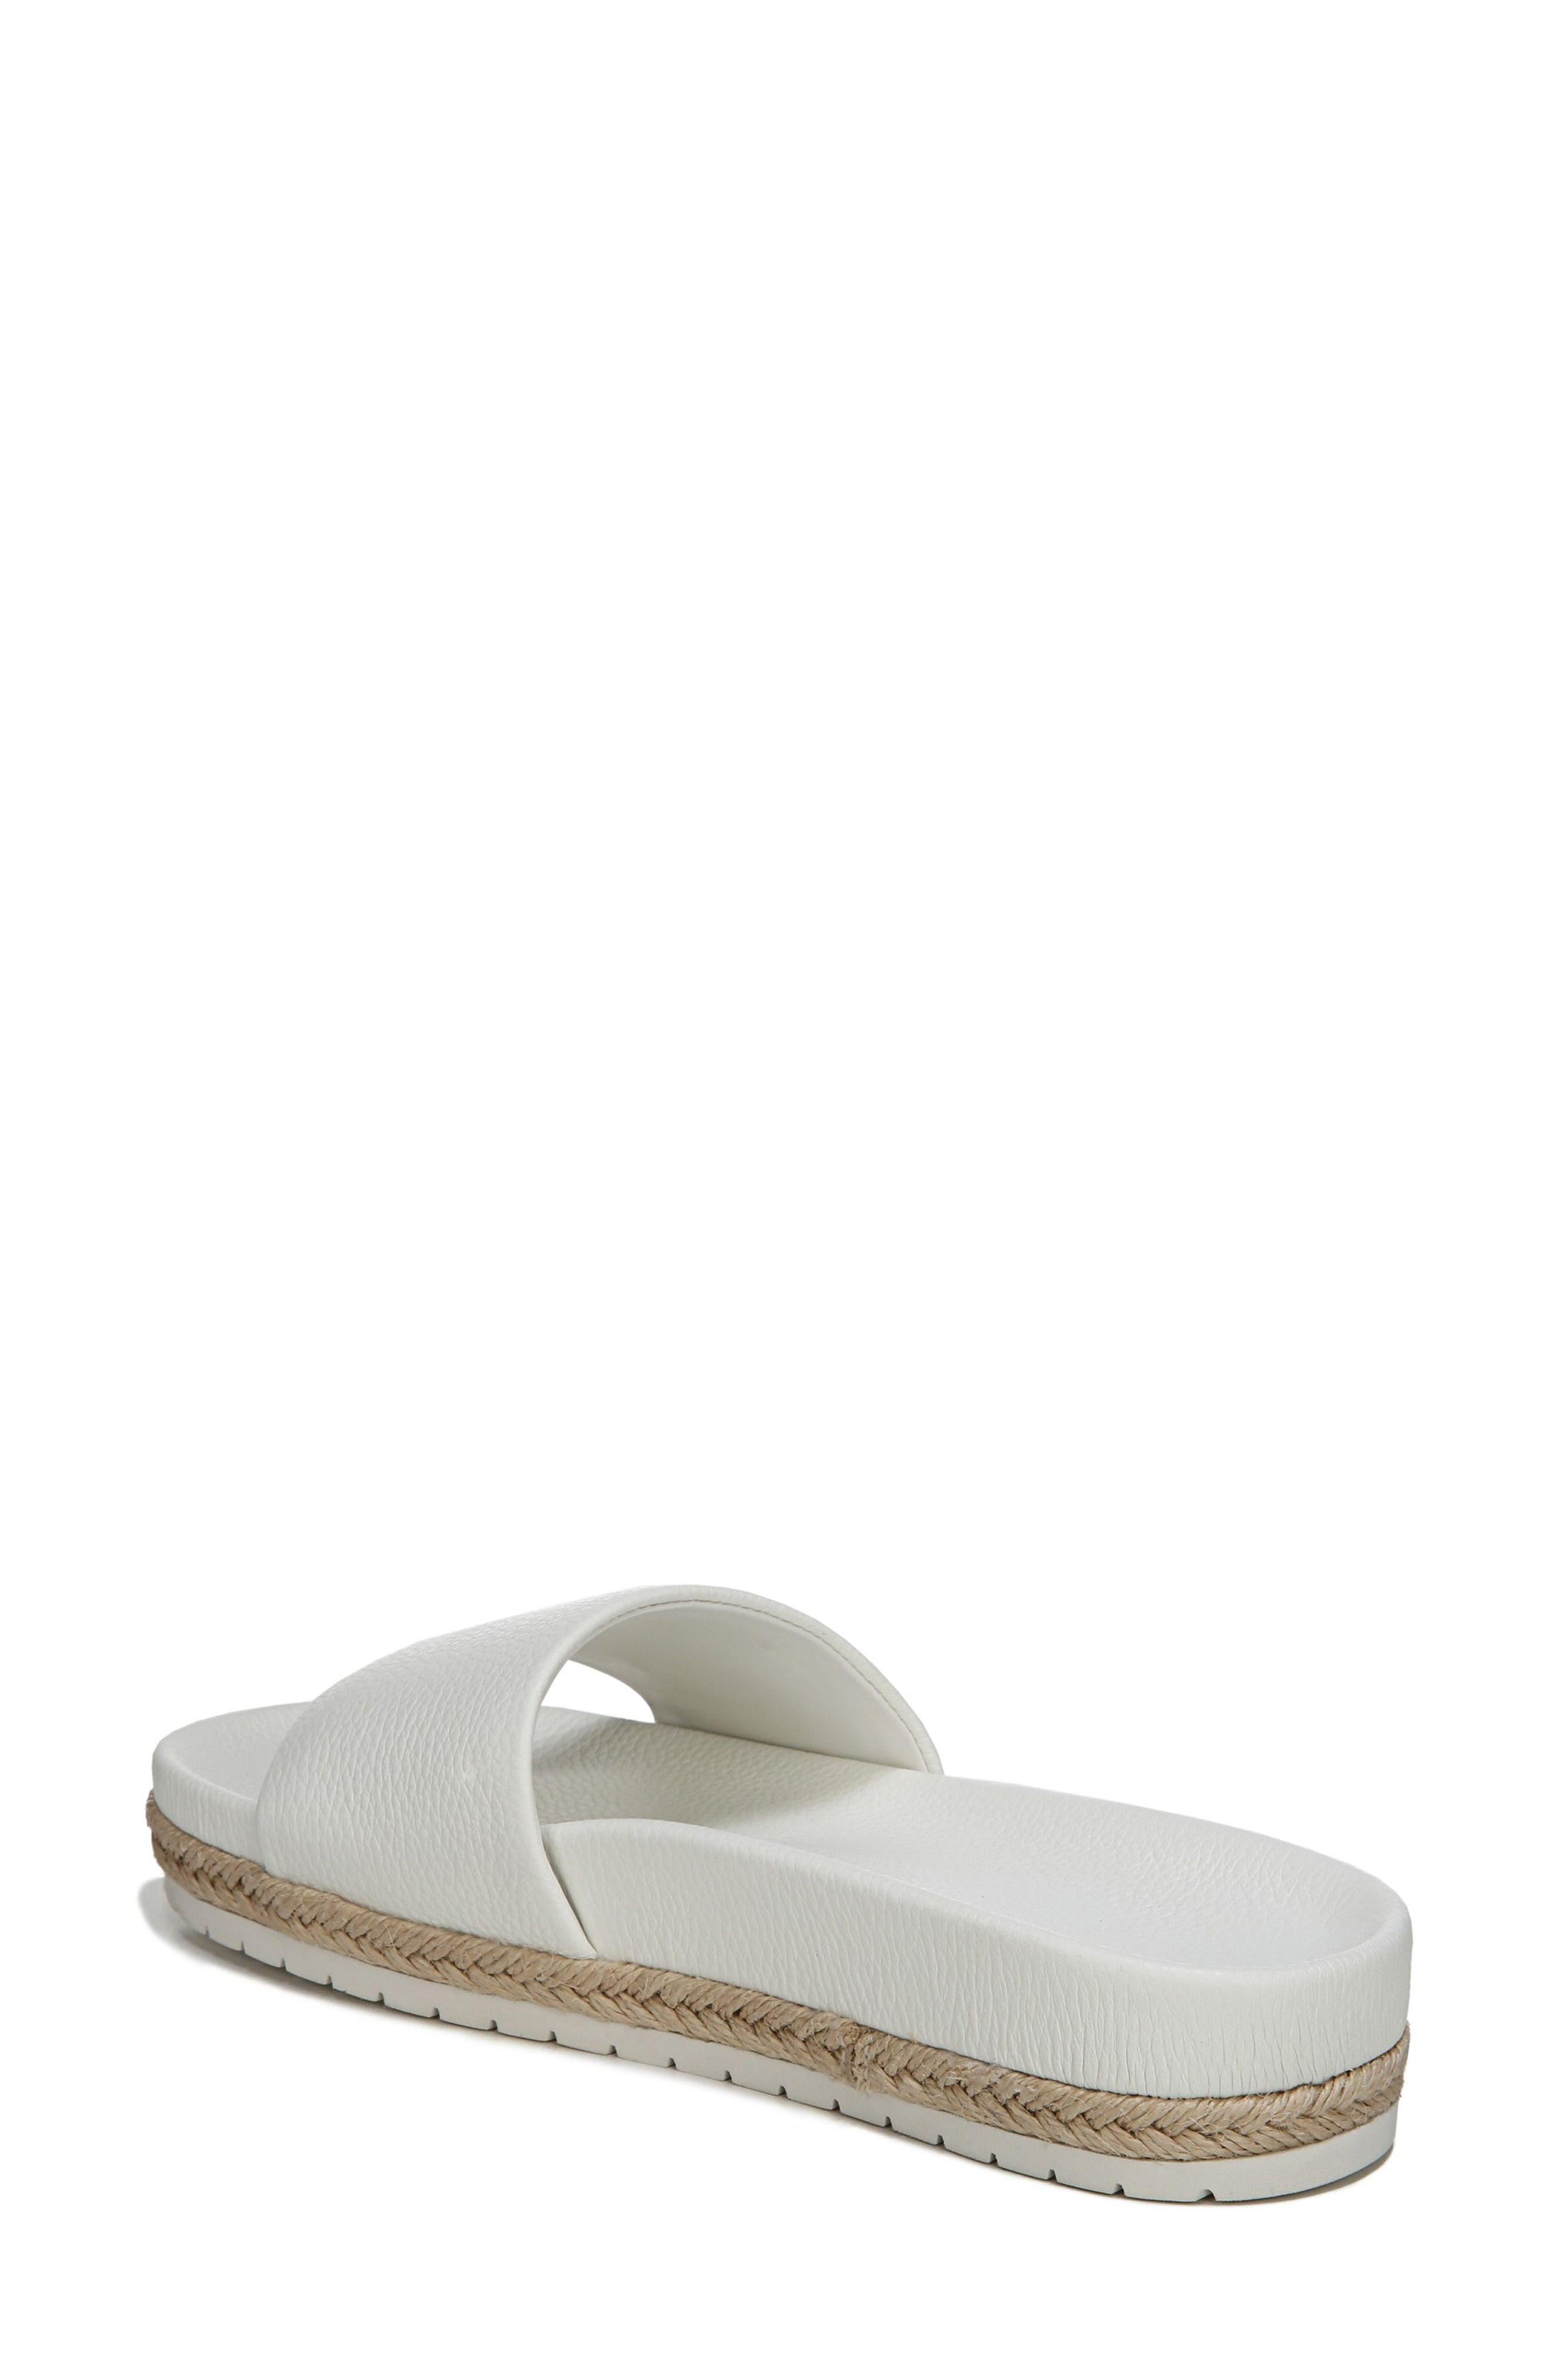 Aurelia Slide Sandal,                             Alternate thumbnail 2, color,                             Panna Cotta